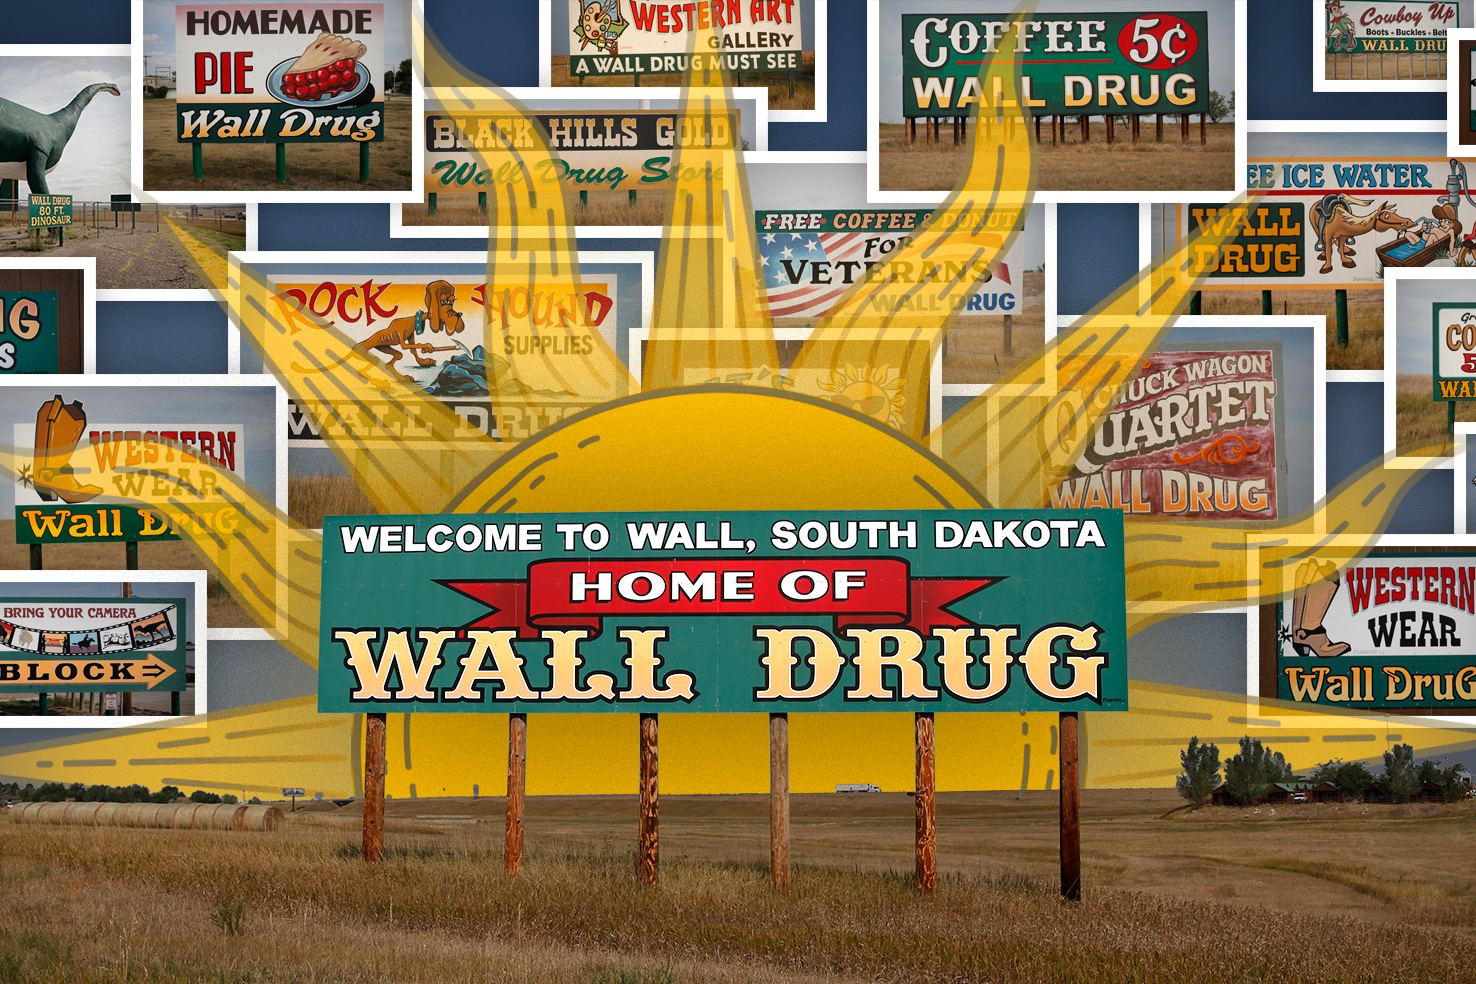 Wall Drug advertising marketing handpainted handmade signs billboards roadside OOH out of home Wall South Dakota SD Badlands Rapid City Sioux Falls Interstate 90 history free ice water coffee five cents nostalgia drugstore tourism travel road trip